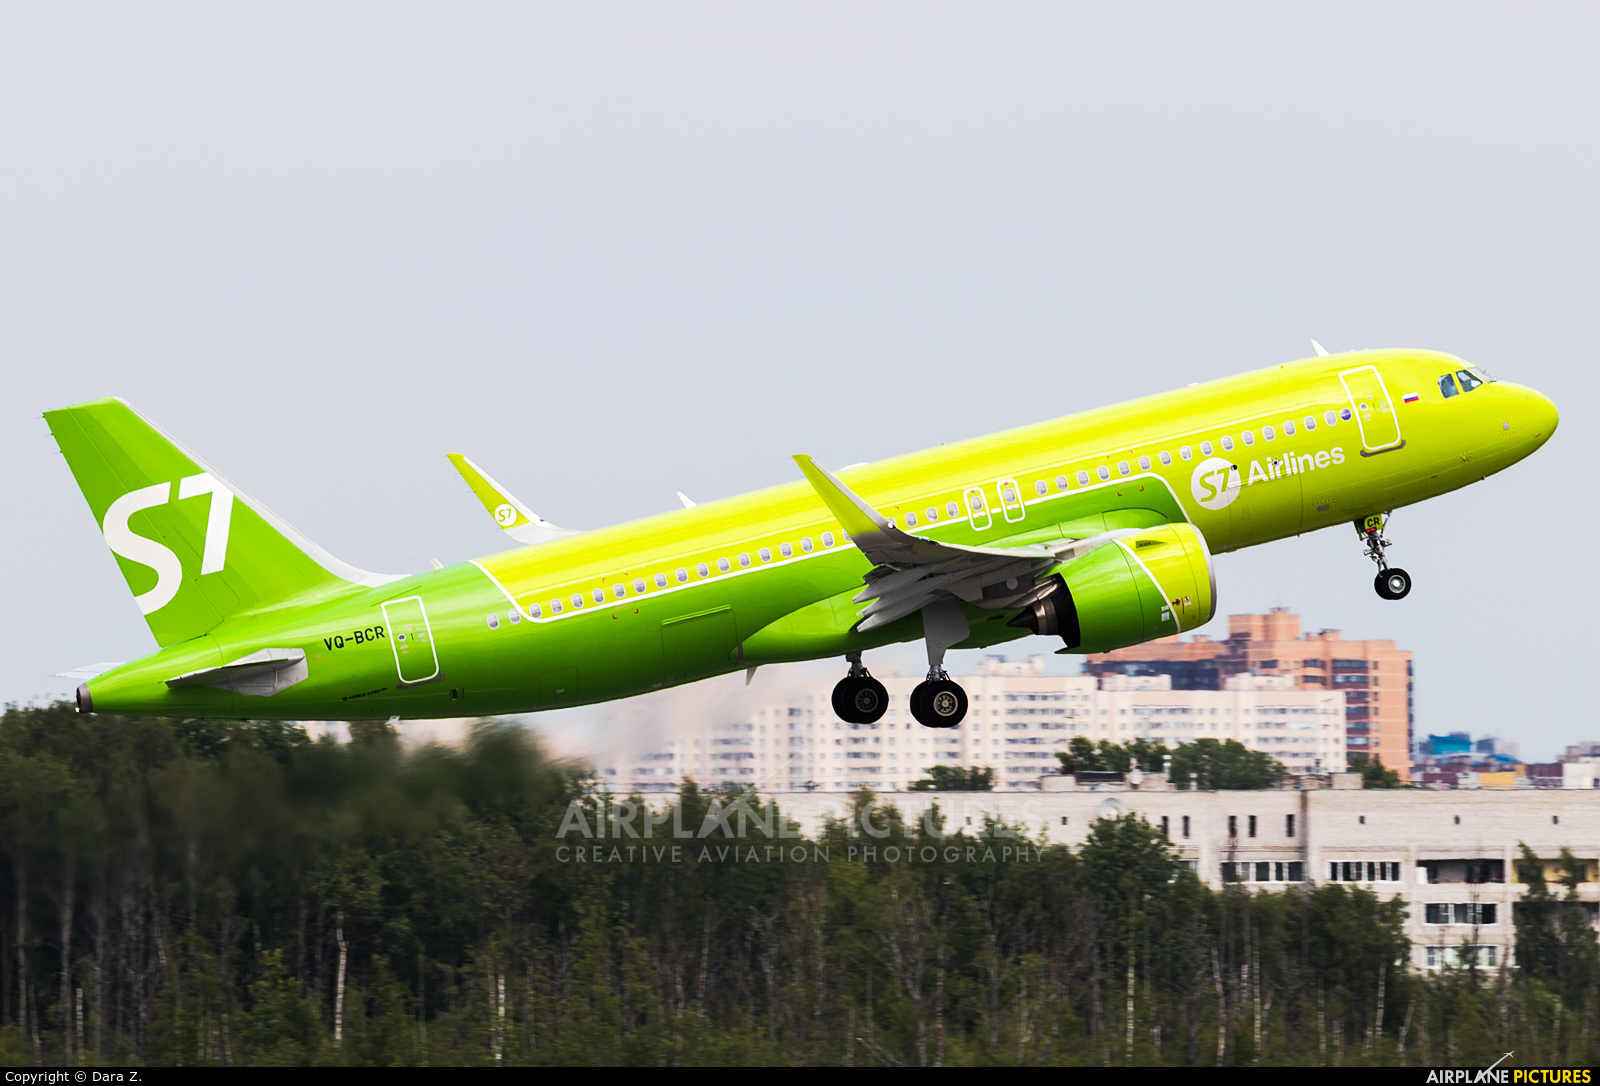 S7 Airlines VQ-BCR aircraft at St. Petersburg - Pulkovo